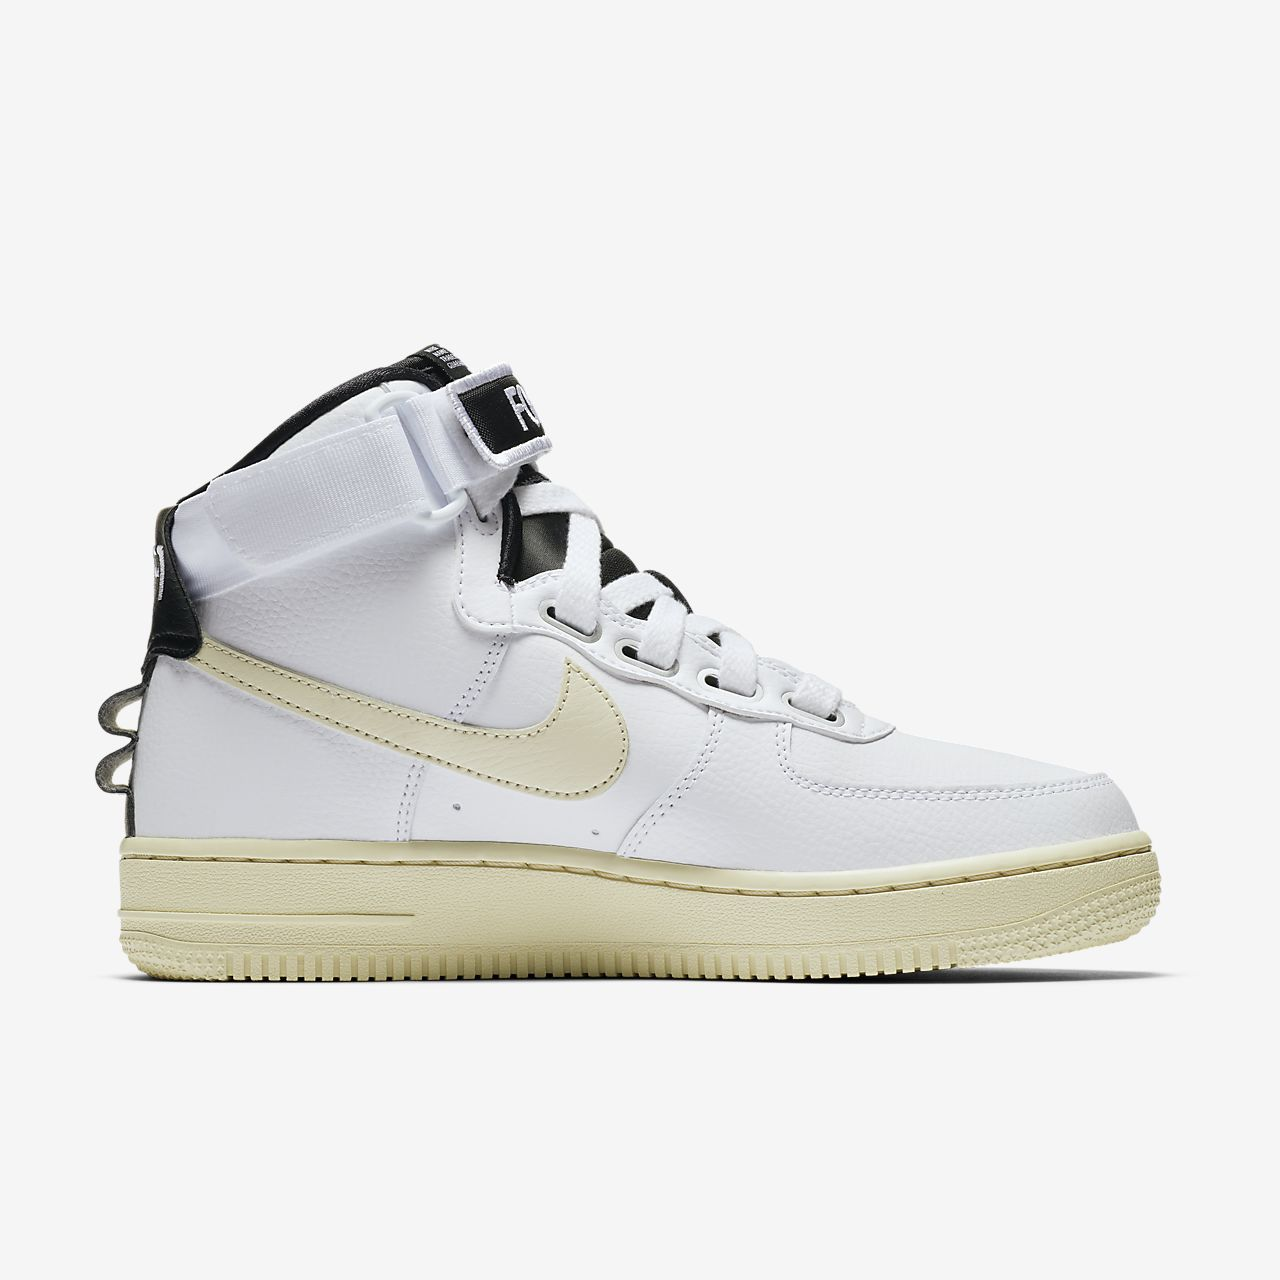 timeless design 06b97 f40a5 Nike Air Force 1 High Utility